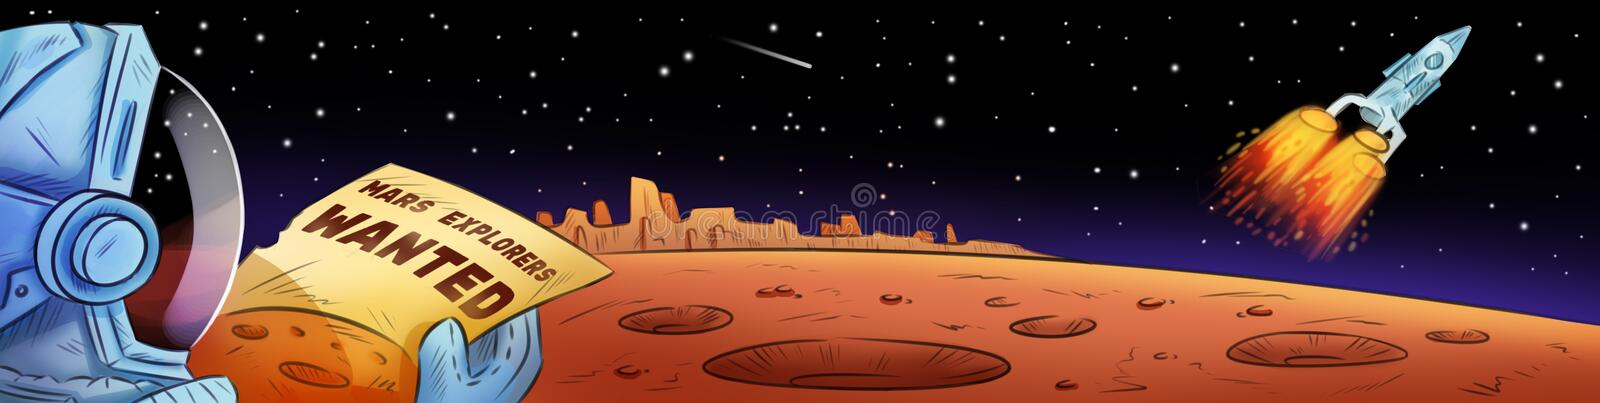 Mars explorers wanted hand drawn comic style cartoon banner. Space exploration, colonization of space royalty free illustration